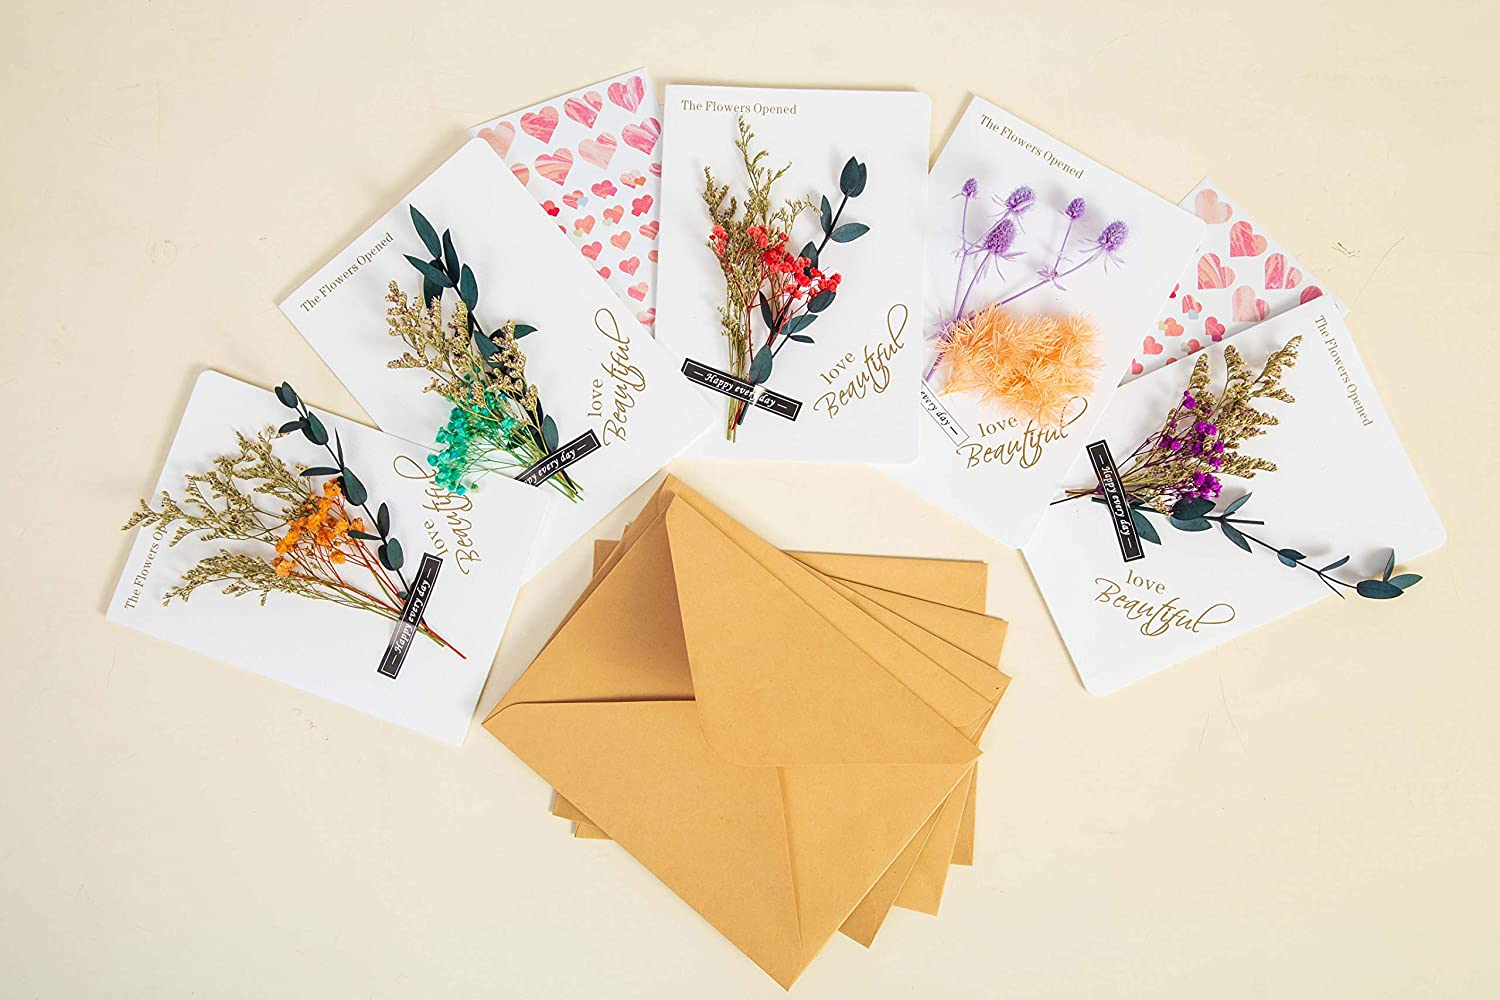 Handmade Dried Flowers Eternal Flower Greeting Card All Occasion Assorted Floral Blank Note Cards Holiday Card With Envelopes And Seal Stickers Wedding Party Invitations Personalized Greetings (5 pcs)